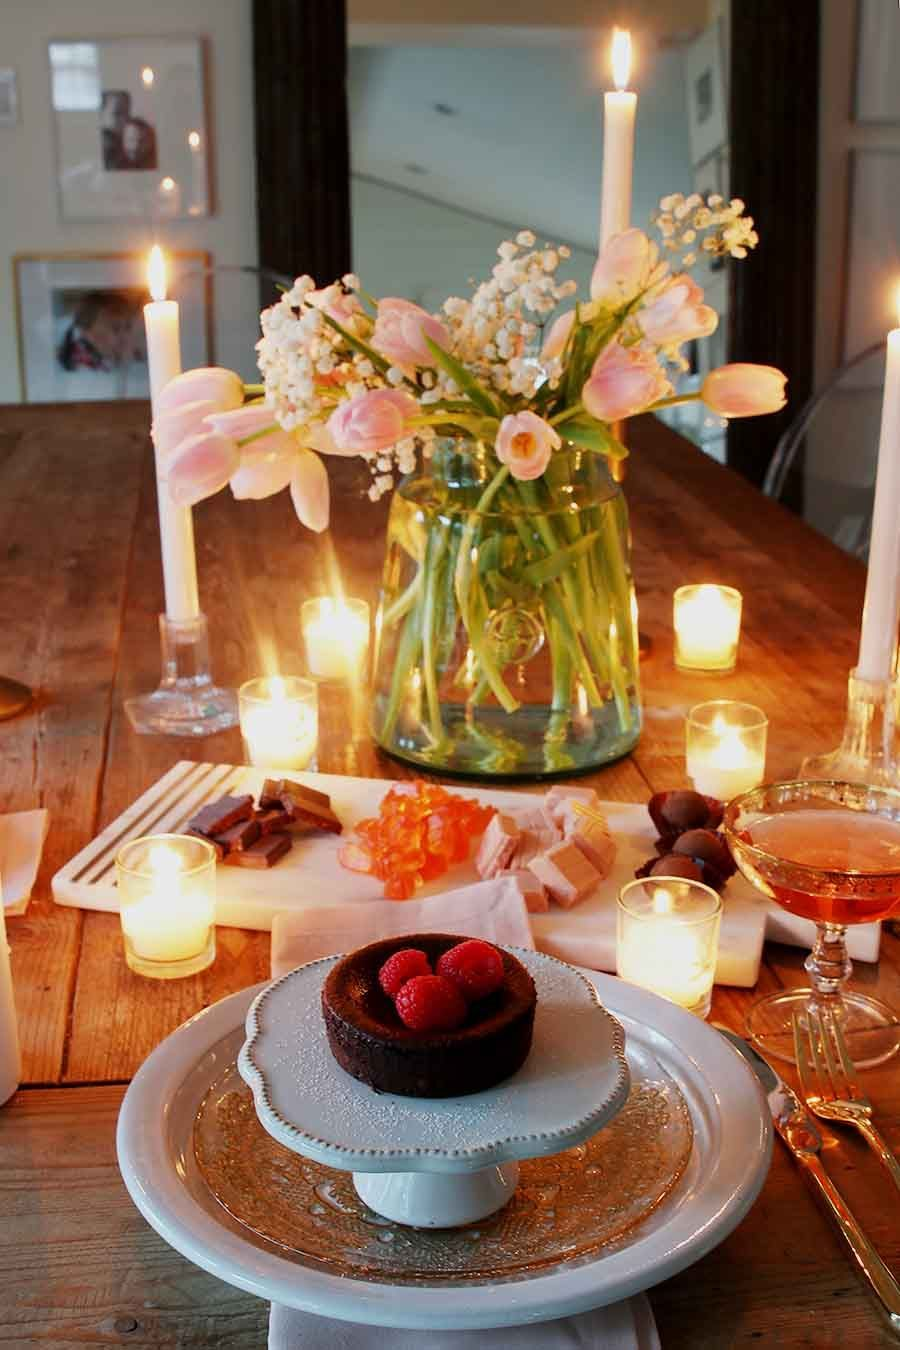 Pin By Sehan Yuna On Romantic Table In 2020 Romantic Dinner Decoration Romantic Dinner Setting Romantic Dinner Tables